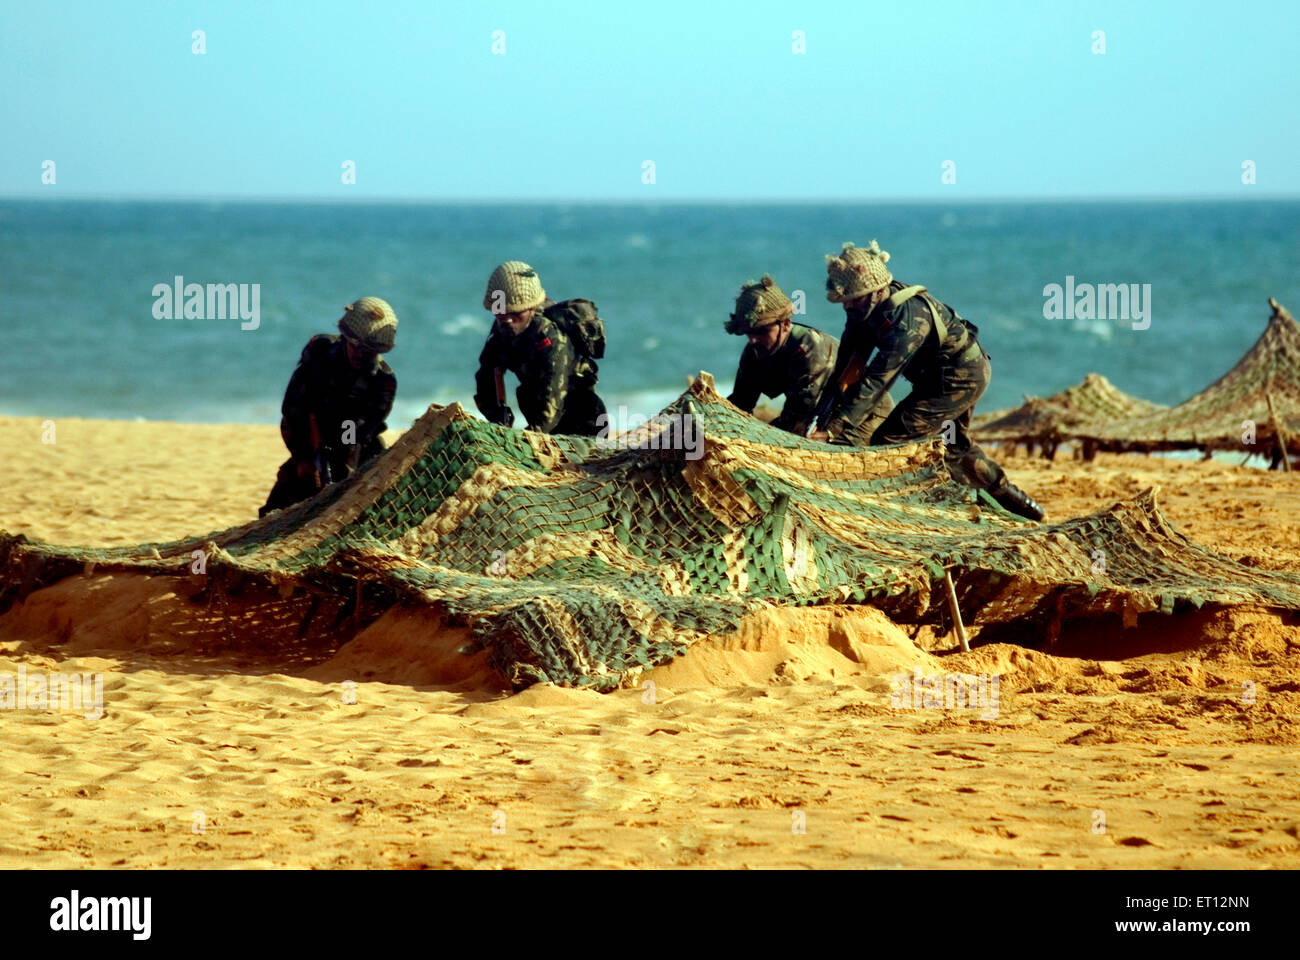 Capturing enemy bunker beach landing operations by Indian army during Army day at Shanghumugom beach ; Trivandrum - Stock Image